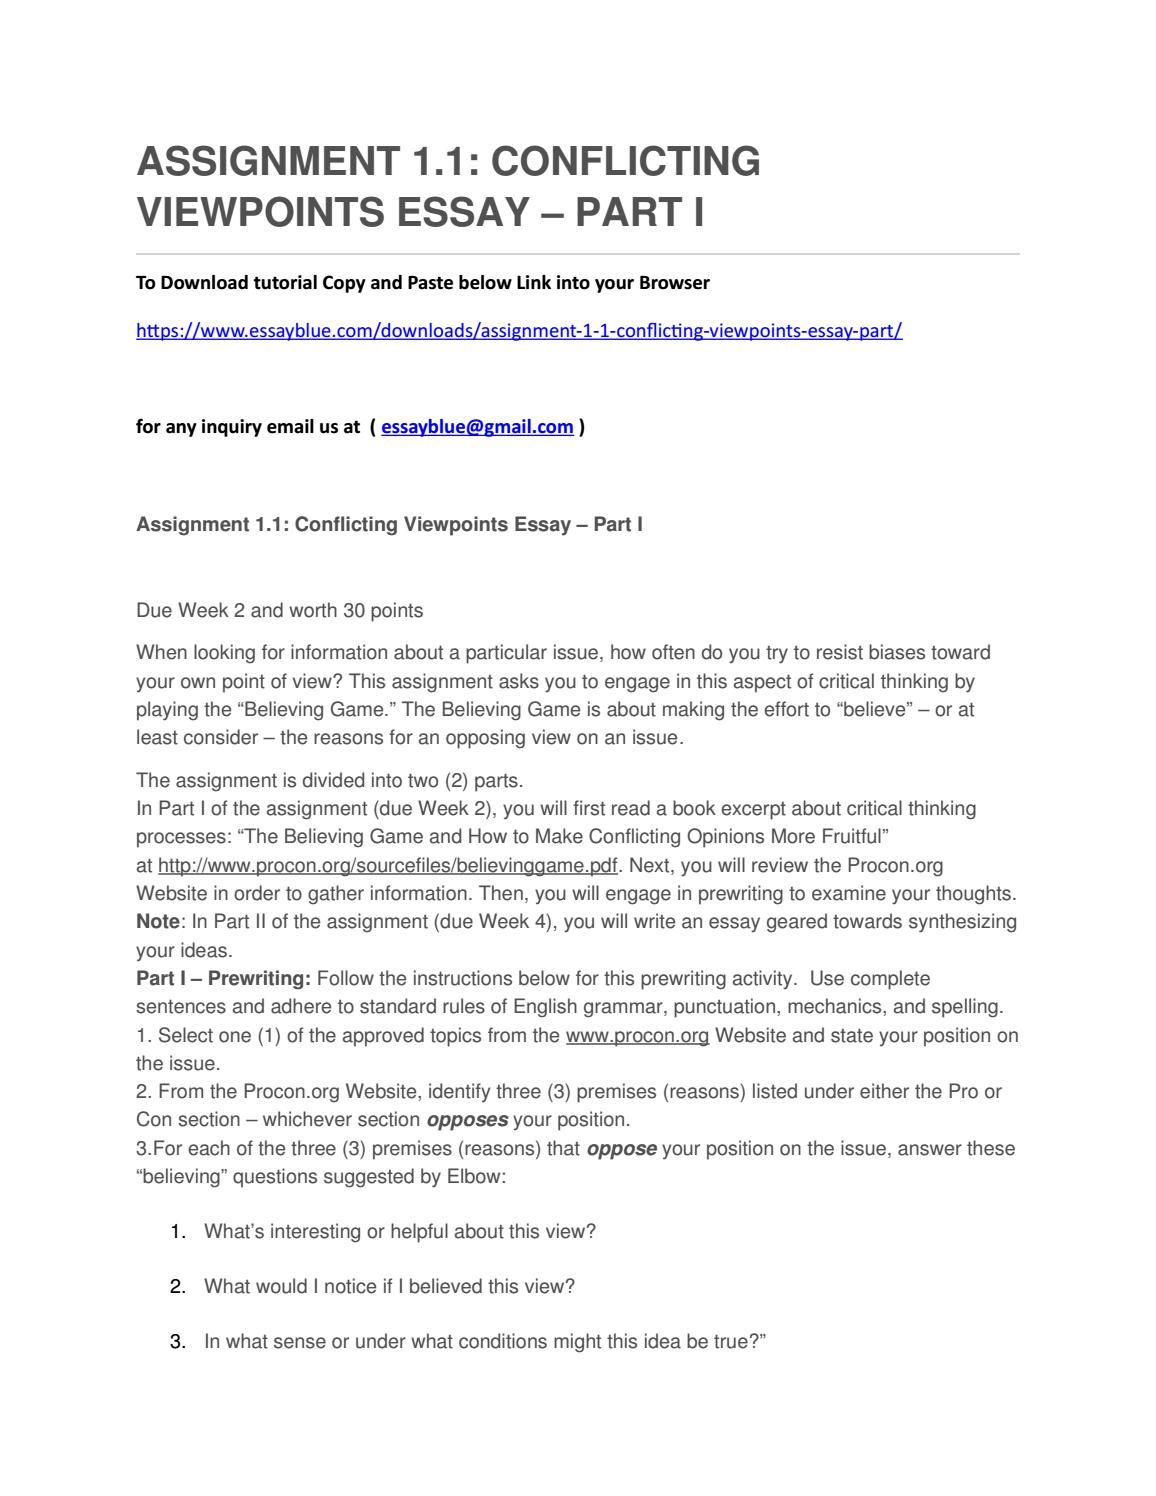 assignment 1.1 conflicting viewpoints essay - part i prewriting due week 2 and worth 30 points